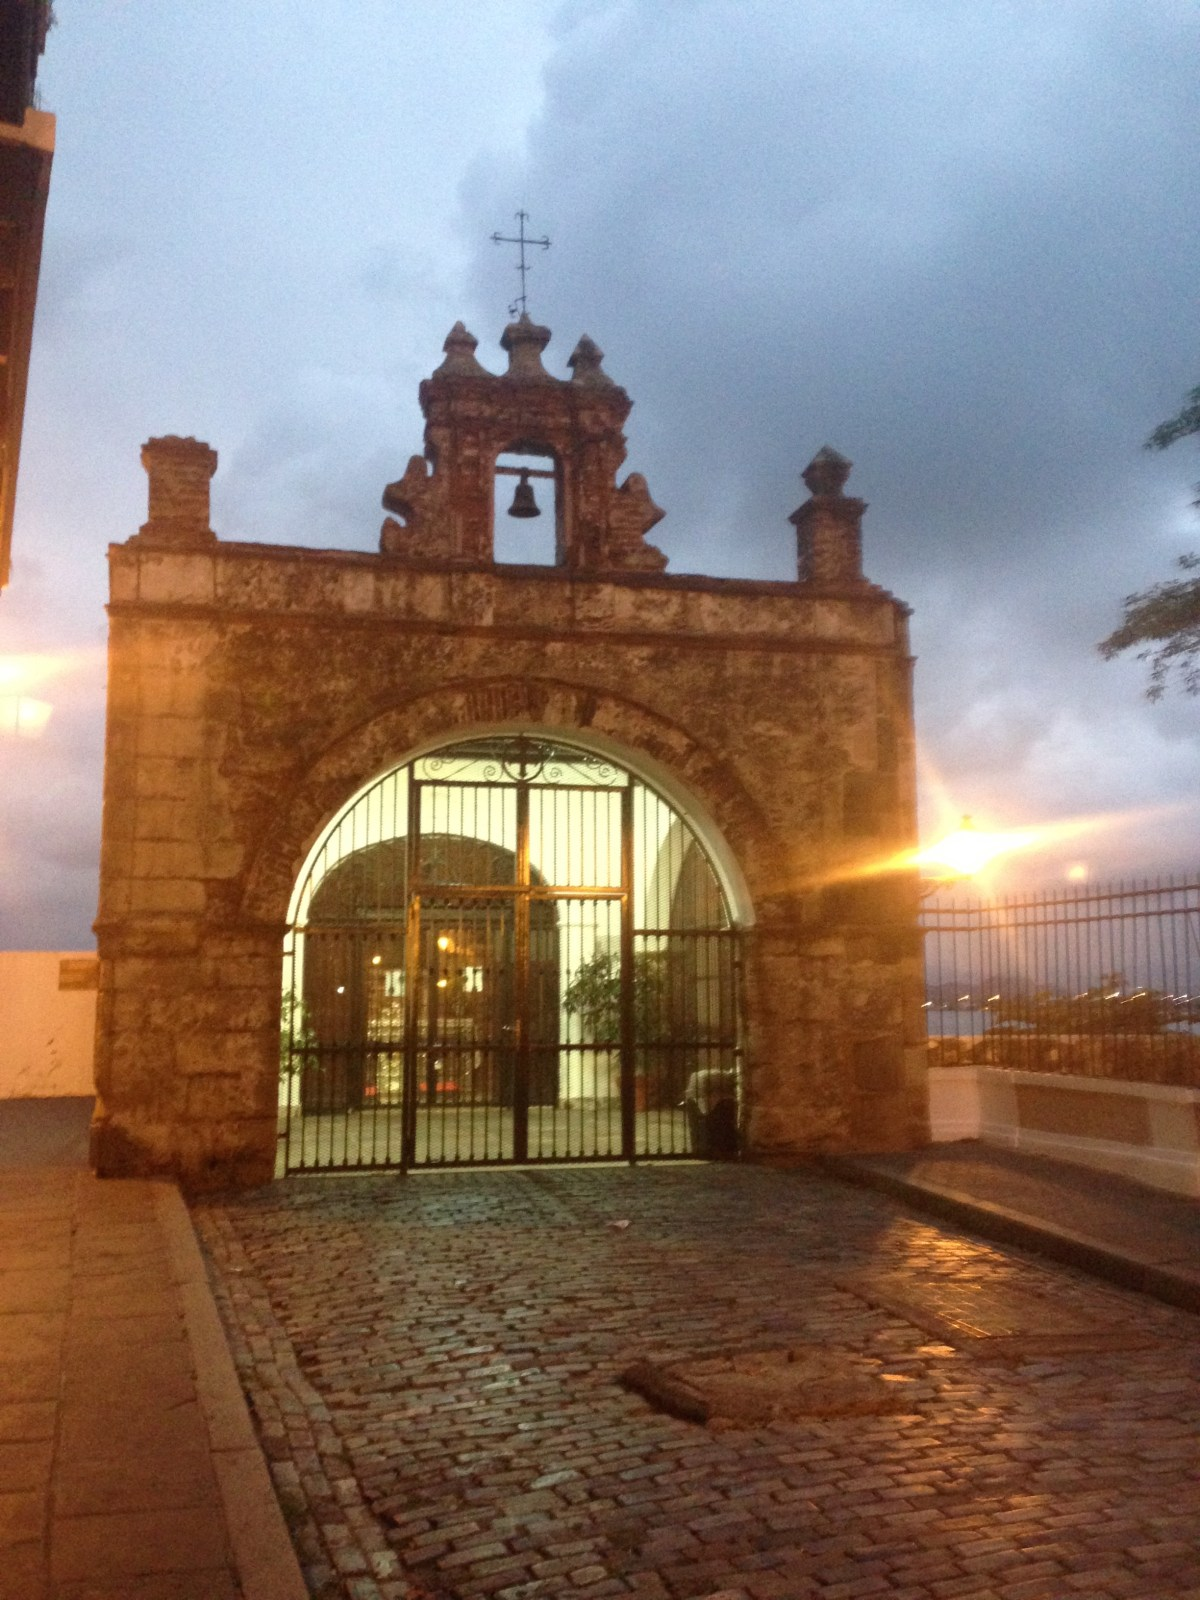 Anan Day Spa in Old San Juan is located next to Parque De Las Palomas park on the water.